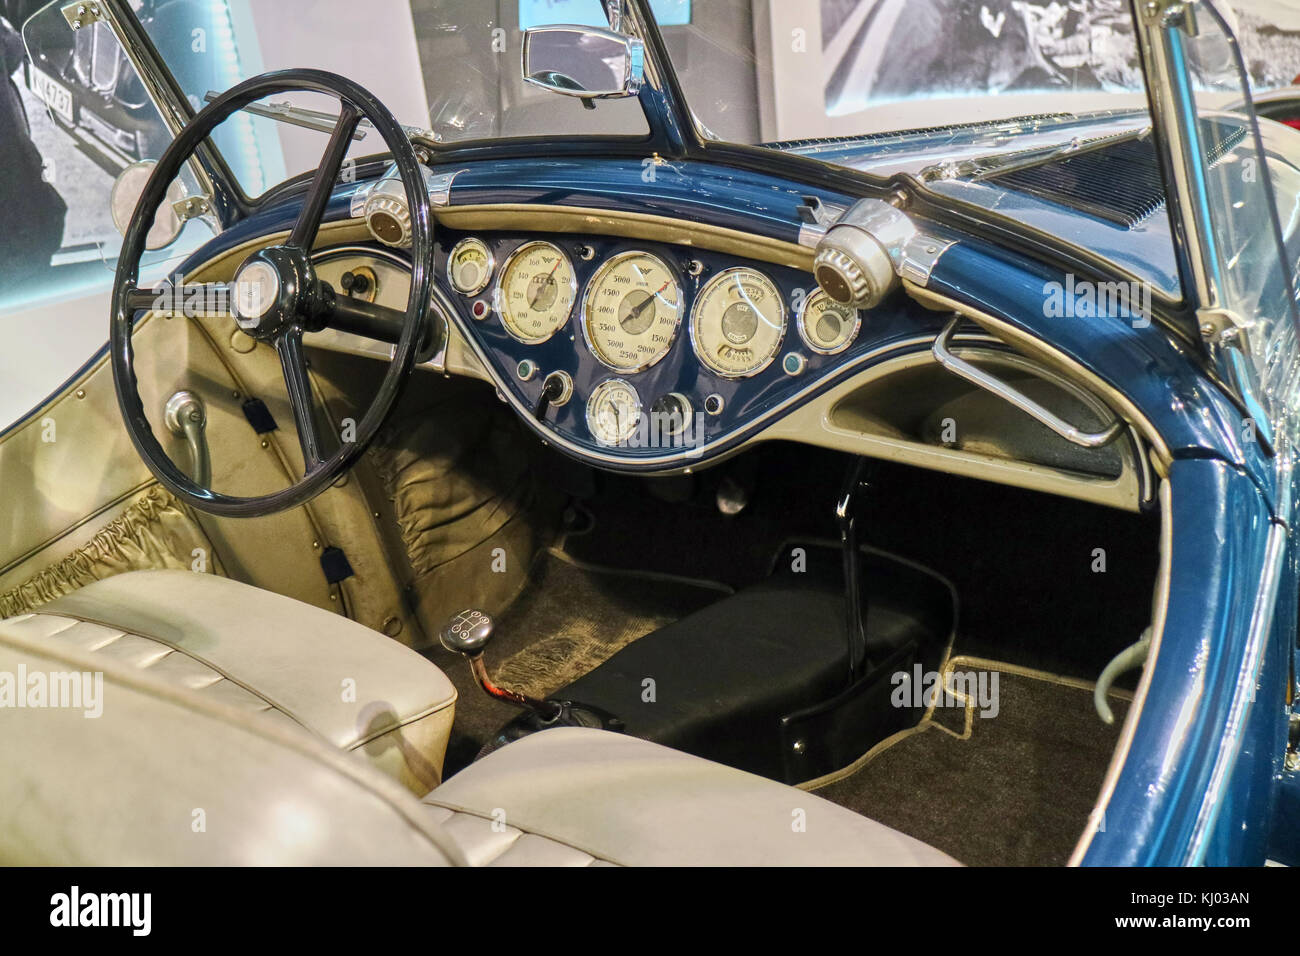 Europe, Germany, Saxony, Zwickau city, The August Horch Museum, Classic antique Wanderer car dashboard with gauges - Stock Image